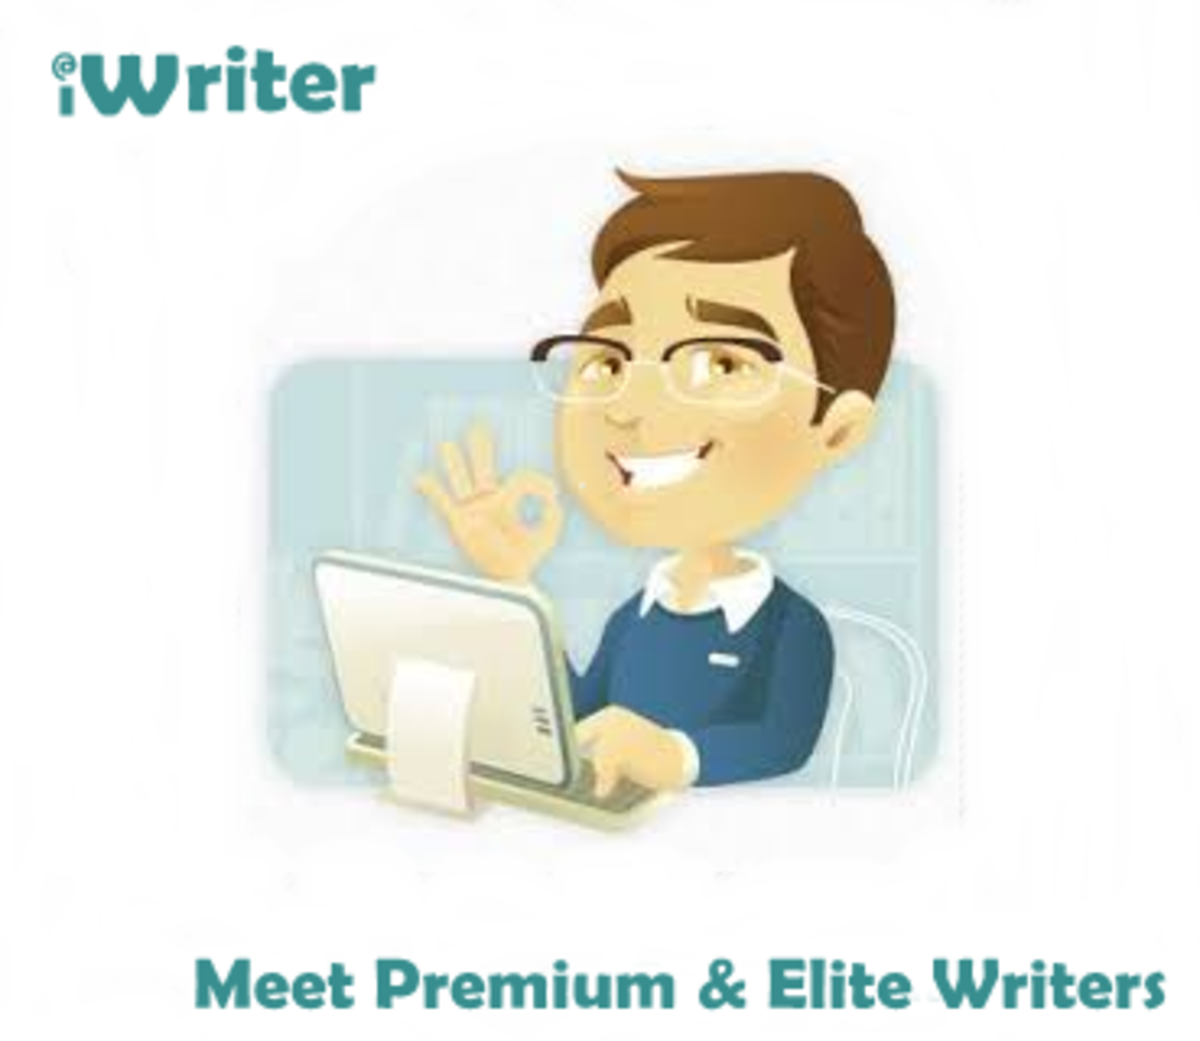 hire top-rated writers for quality content